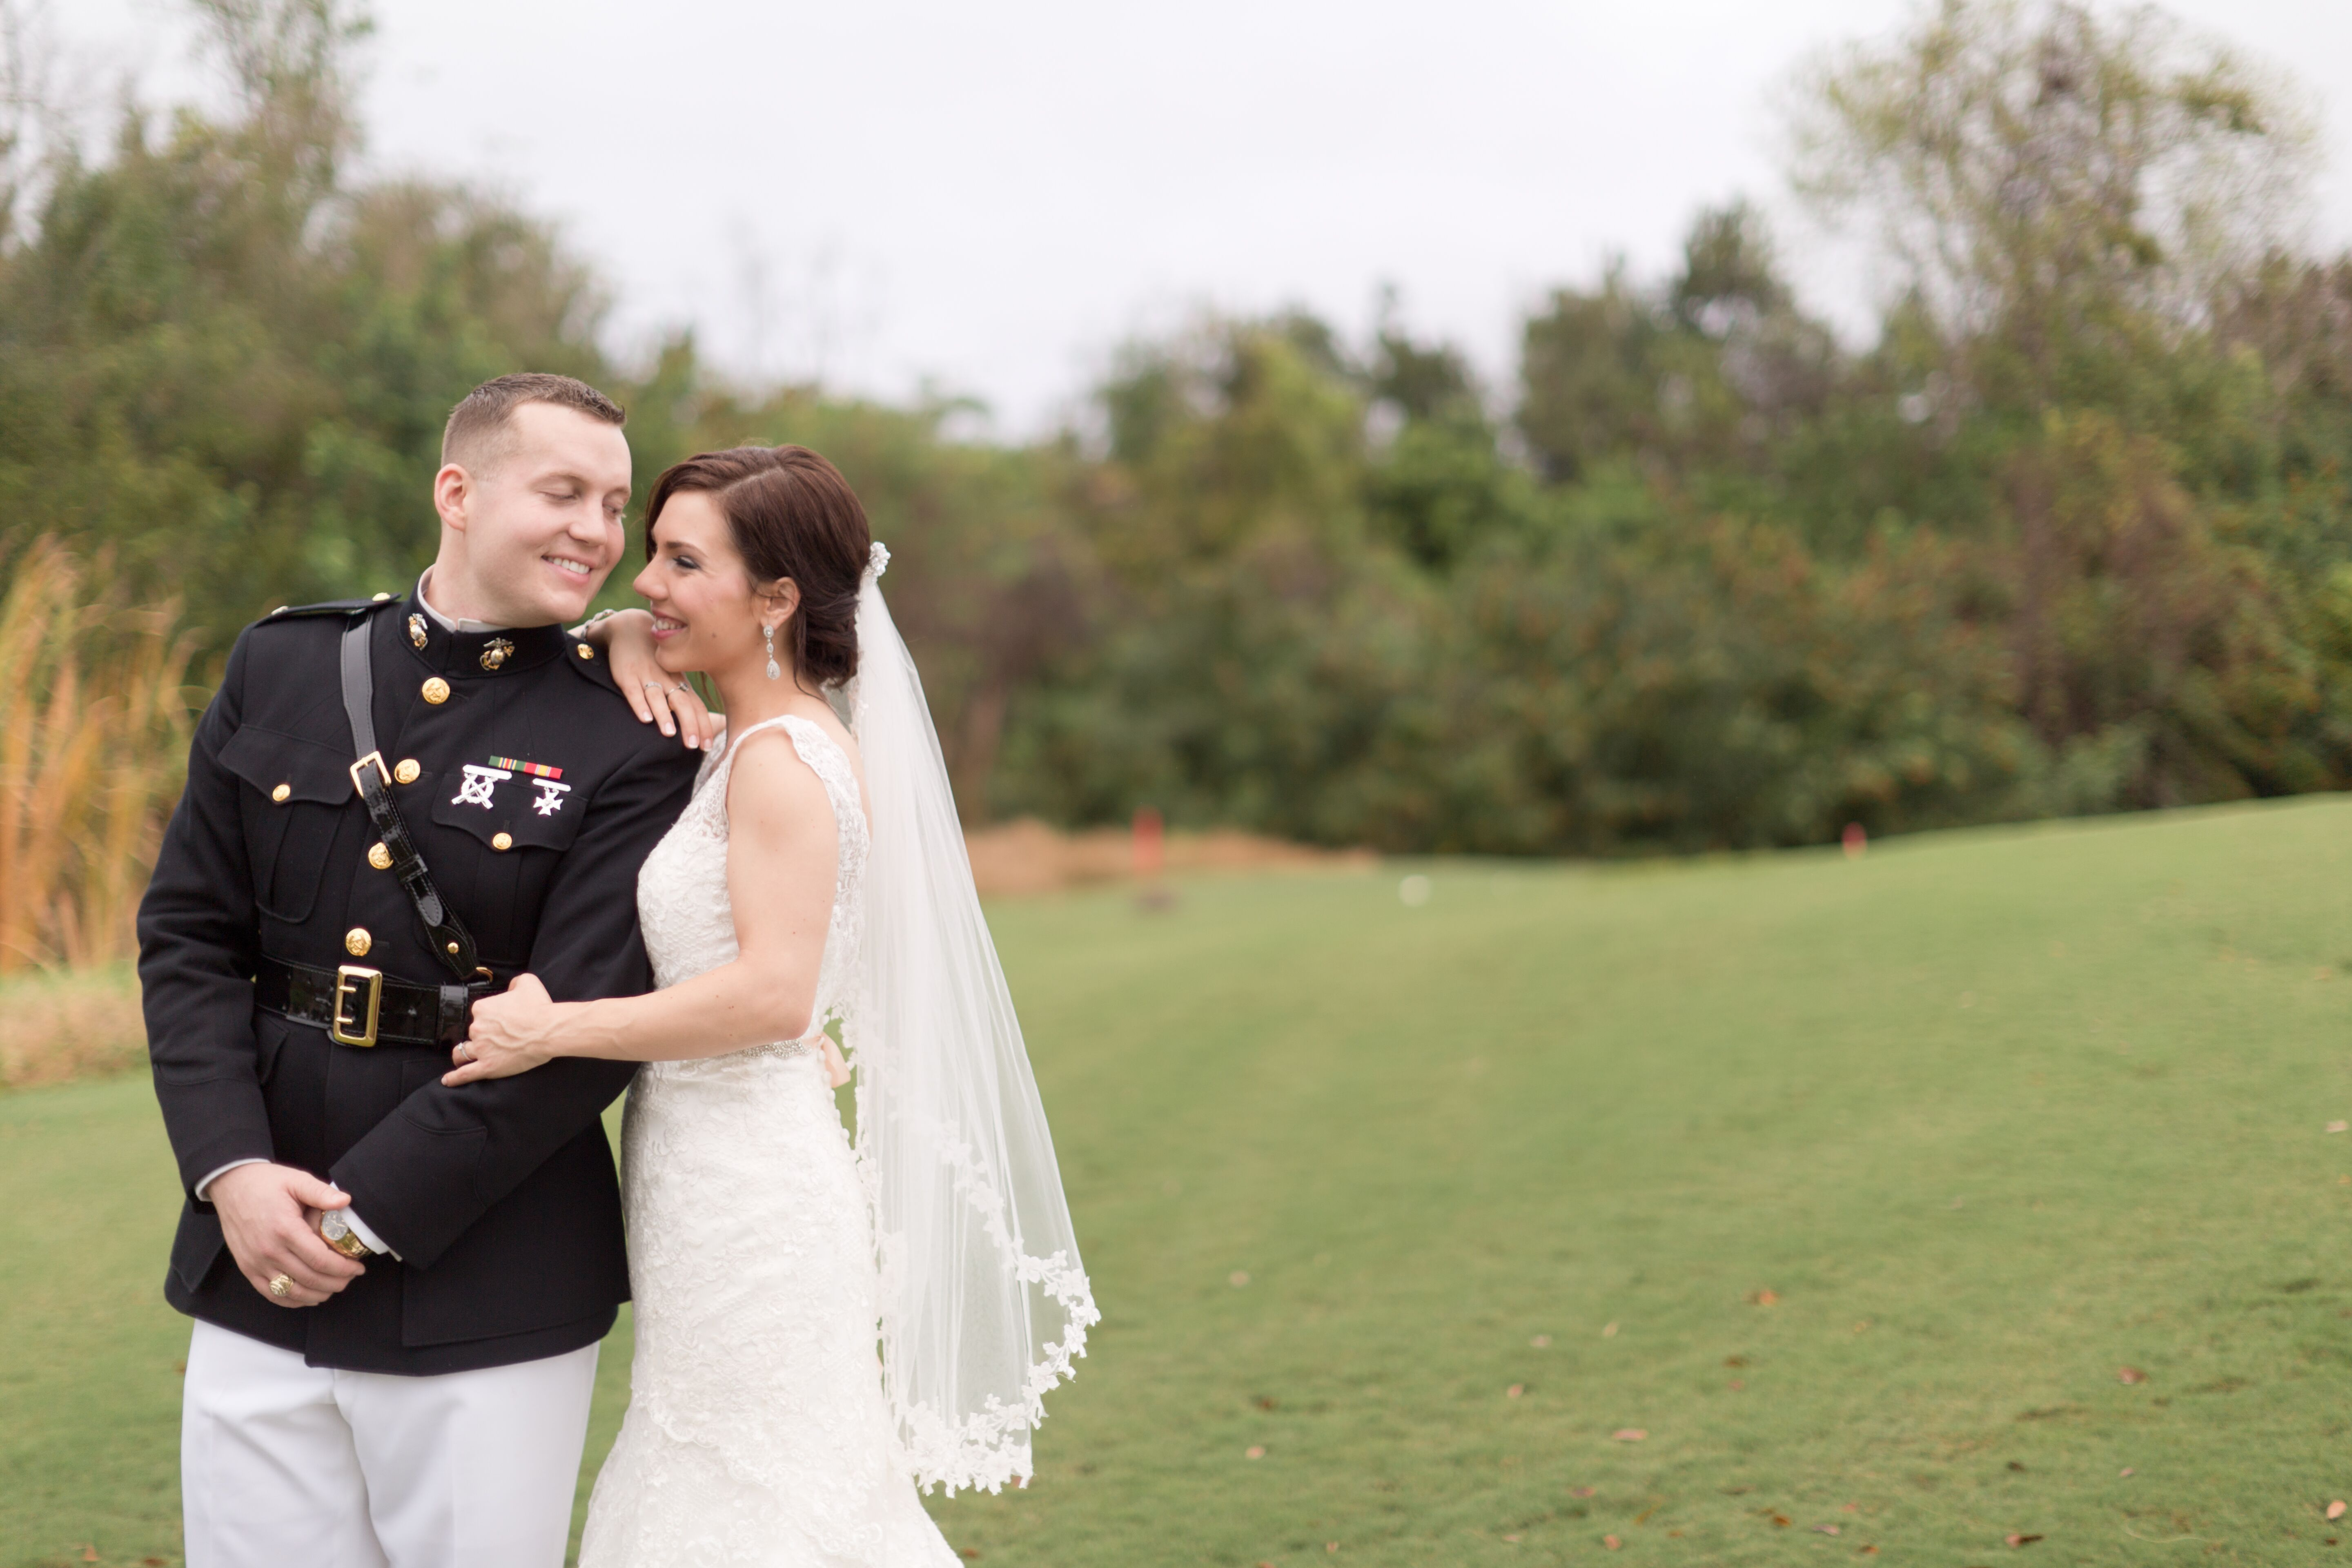 A Romantic Wedding At The Lakewood Ranch Golf And Country